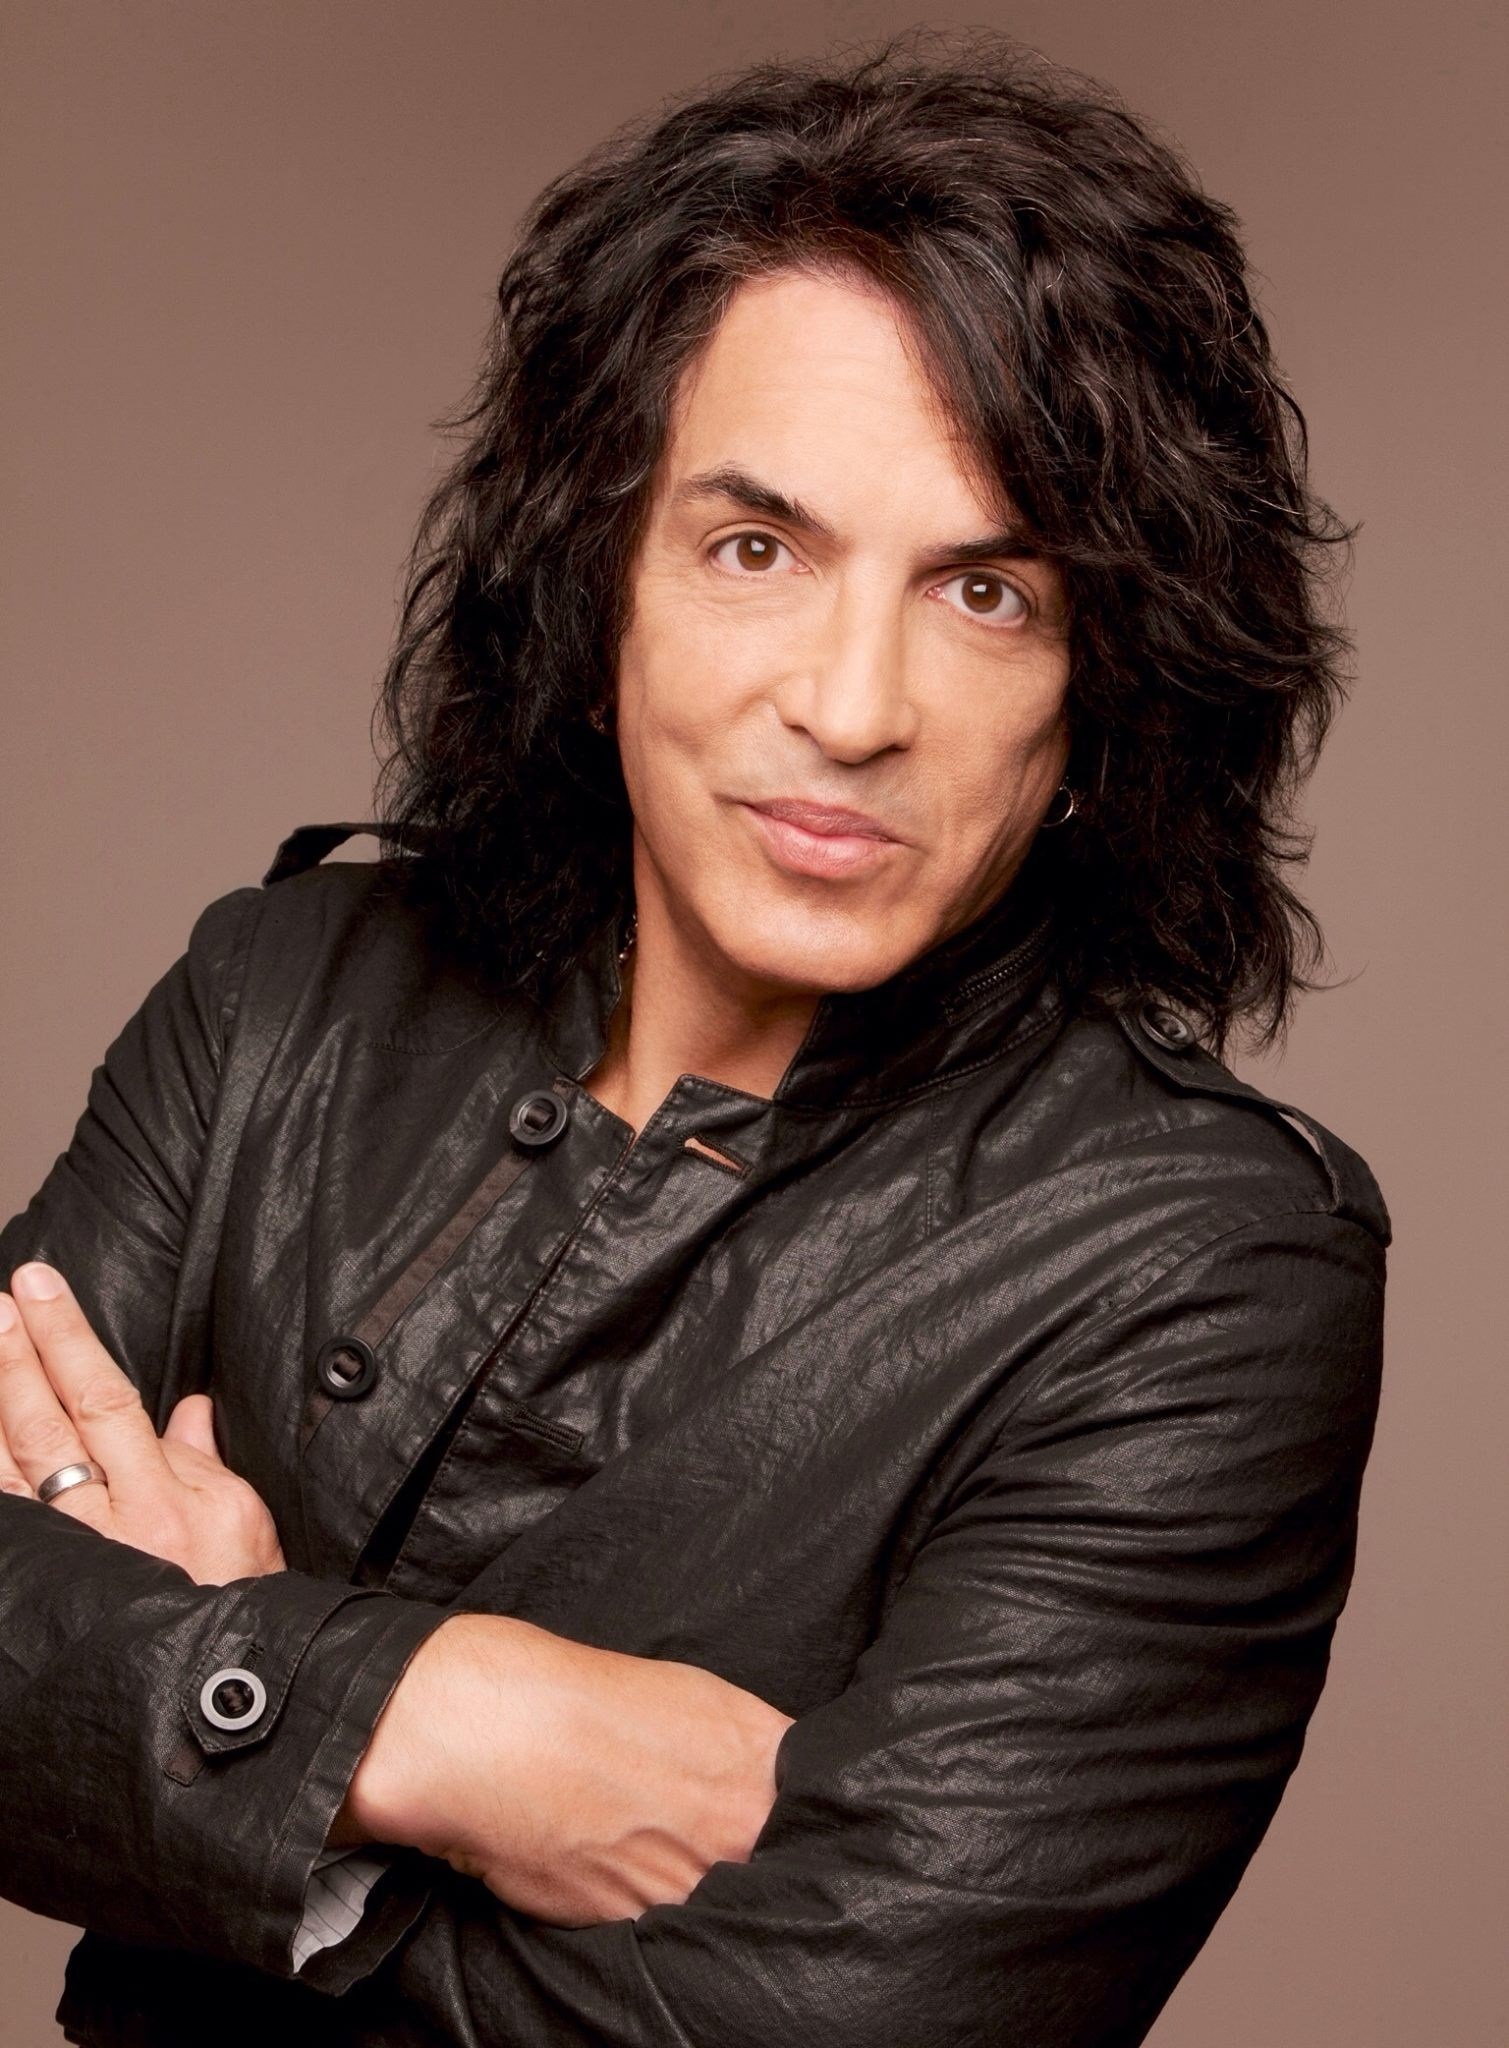 paul stanley known people famous people news and